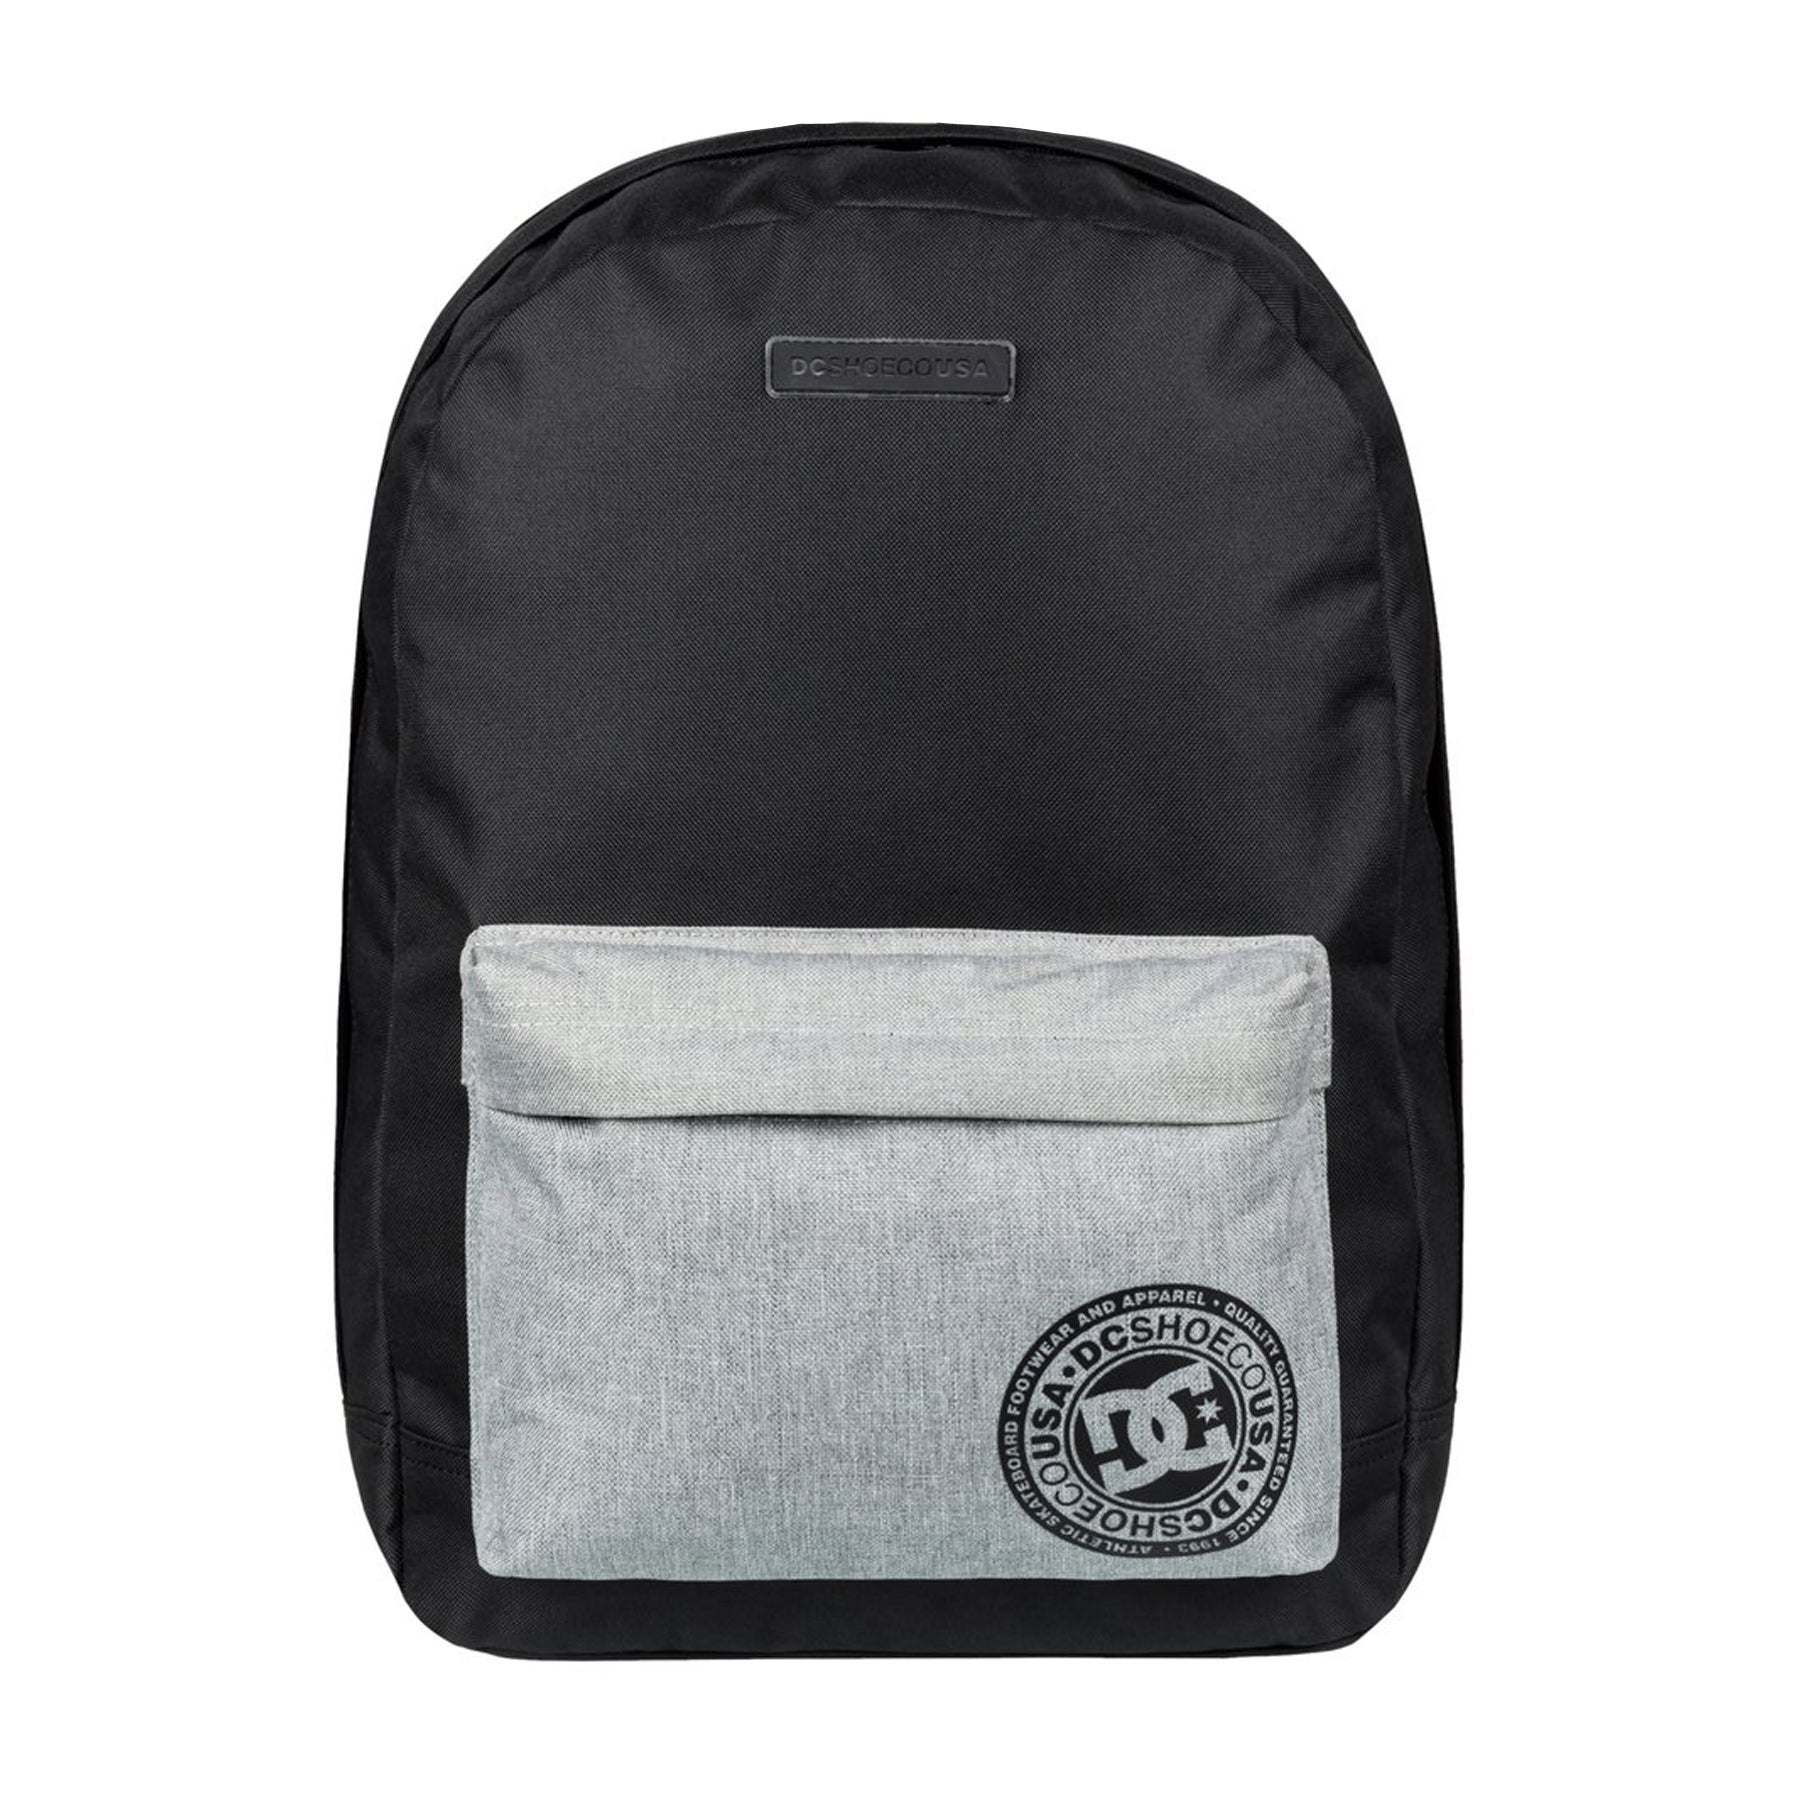 DC Backstack Canvas Backpack - Black